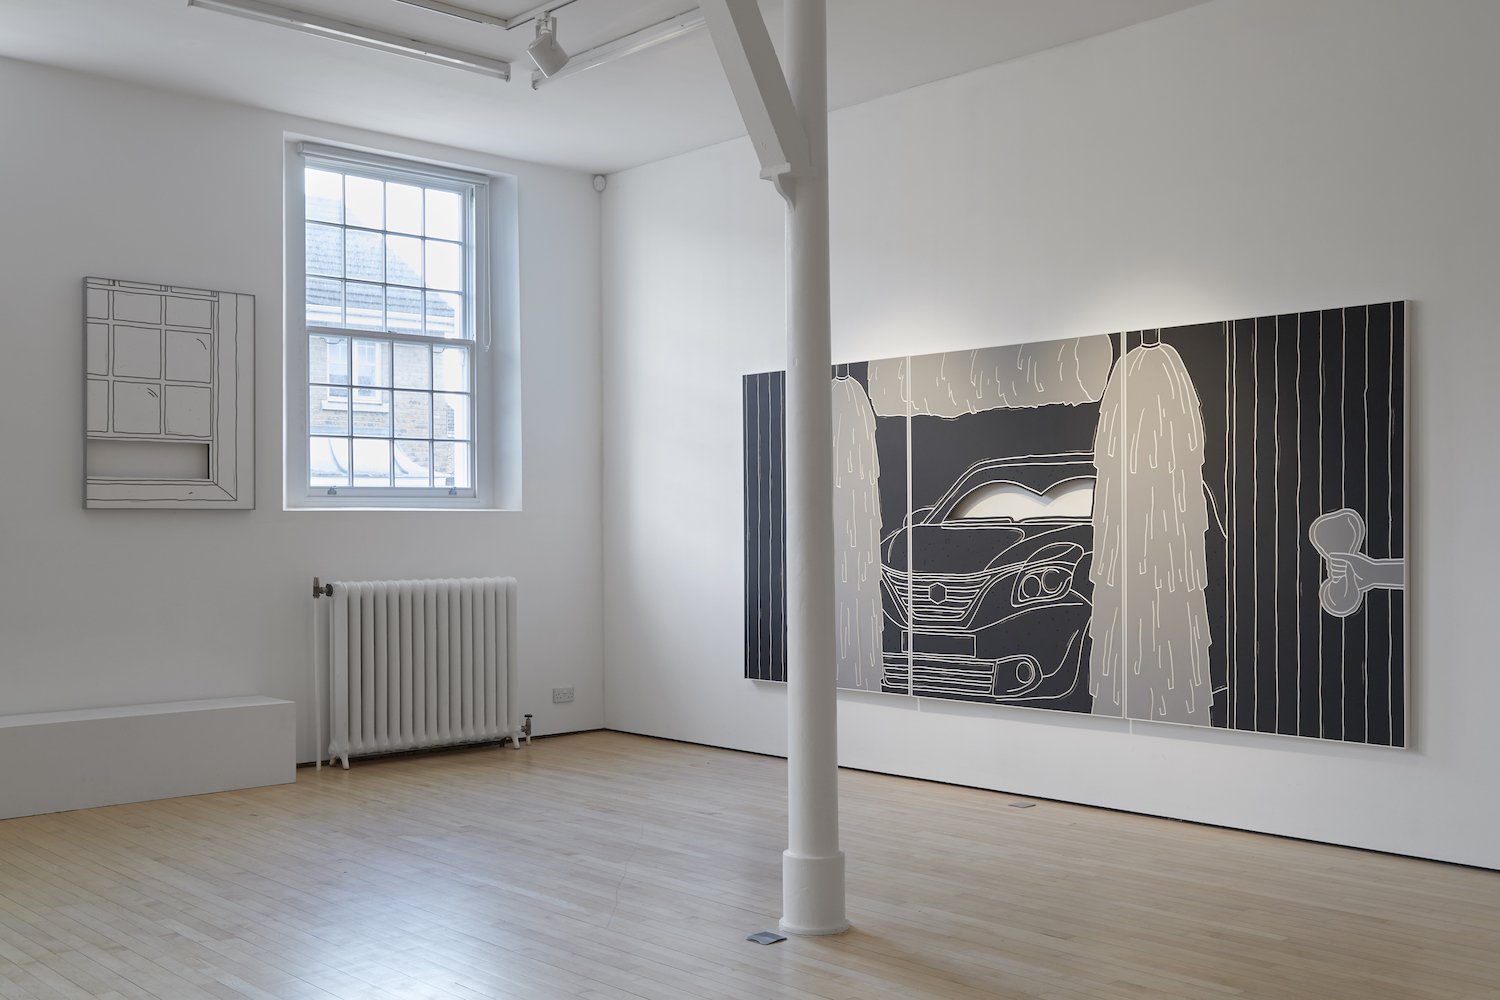 Milly Peck, Pressure Head, 2018. Installation view. Assembly Point, London, UK. Photographer: Ben Westoby.